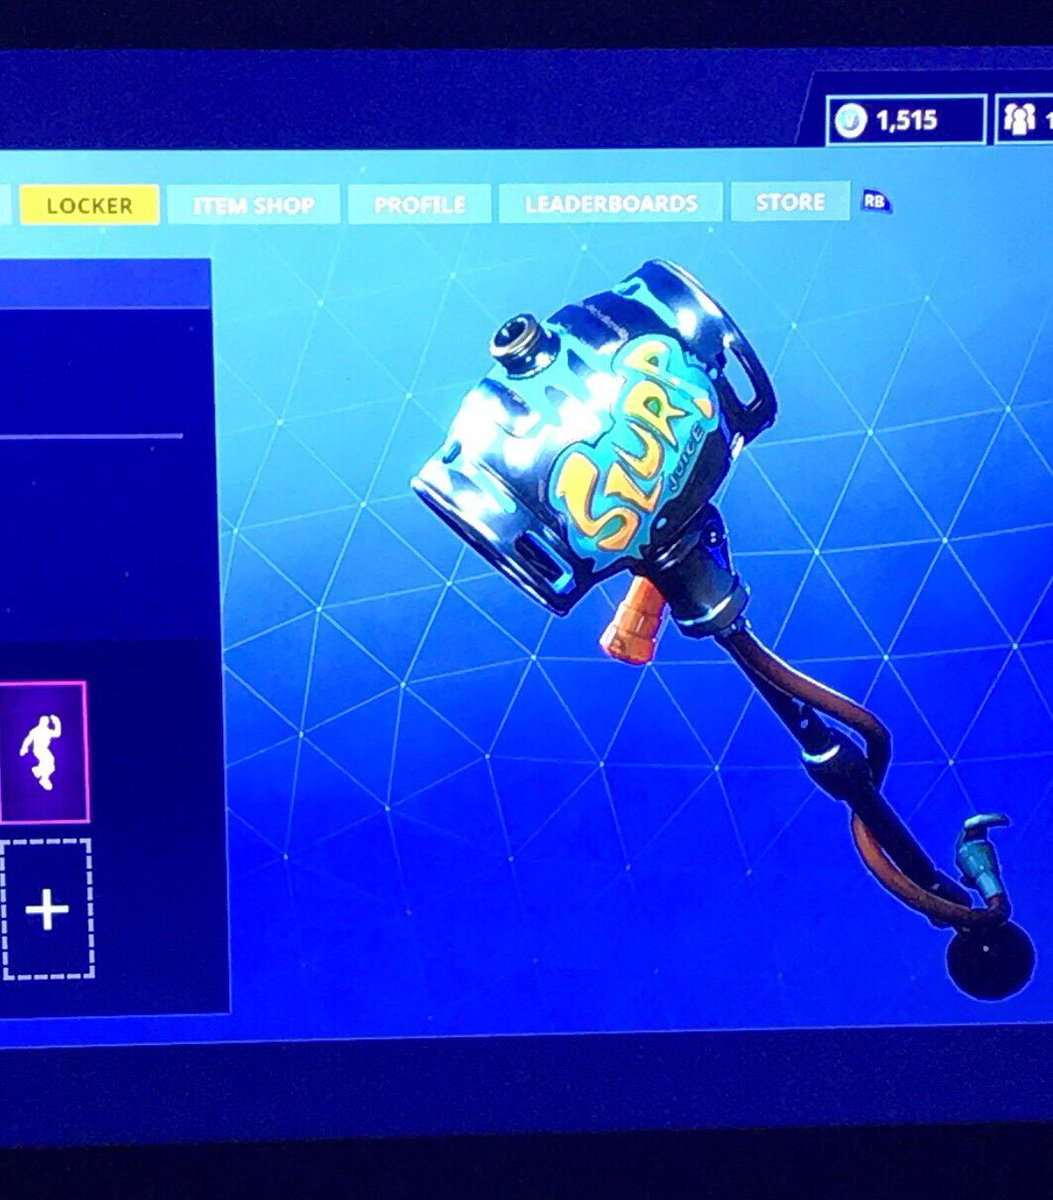 0 replies 0 retweets 1 like - fortnite slurp axe